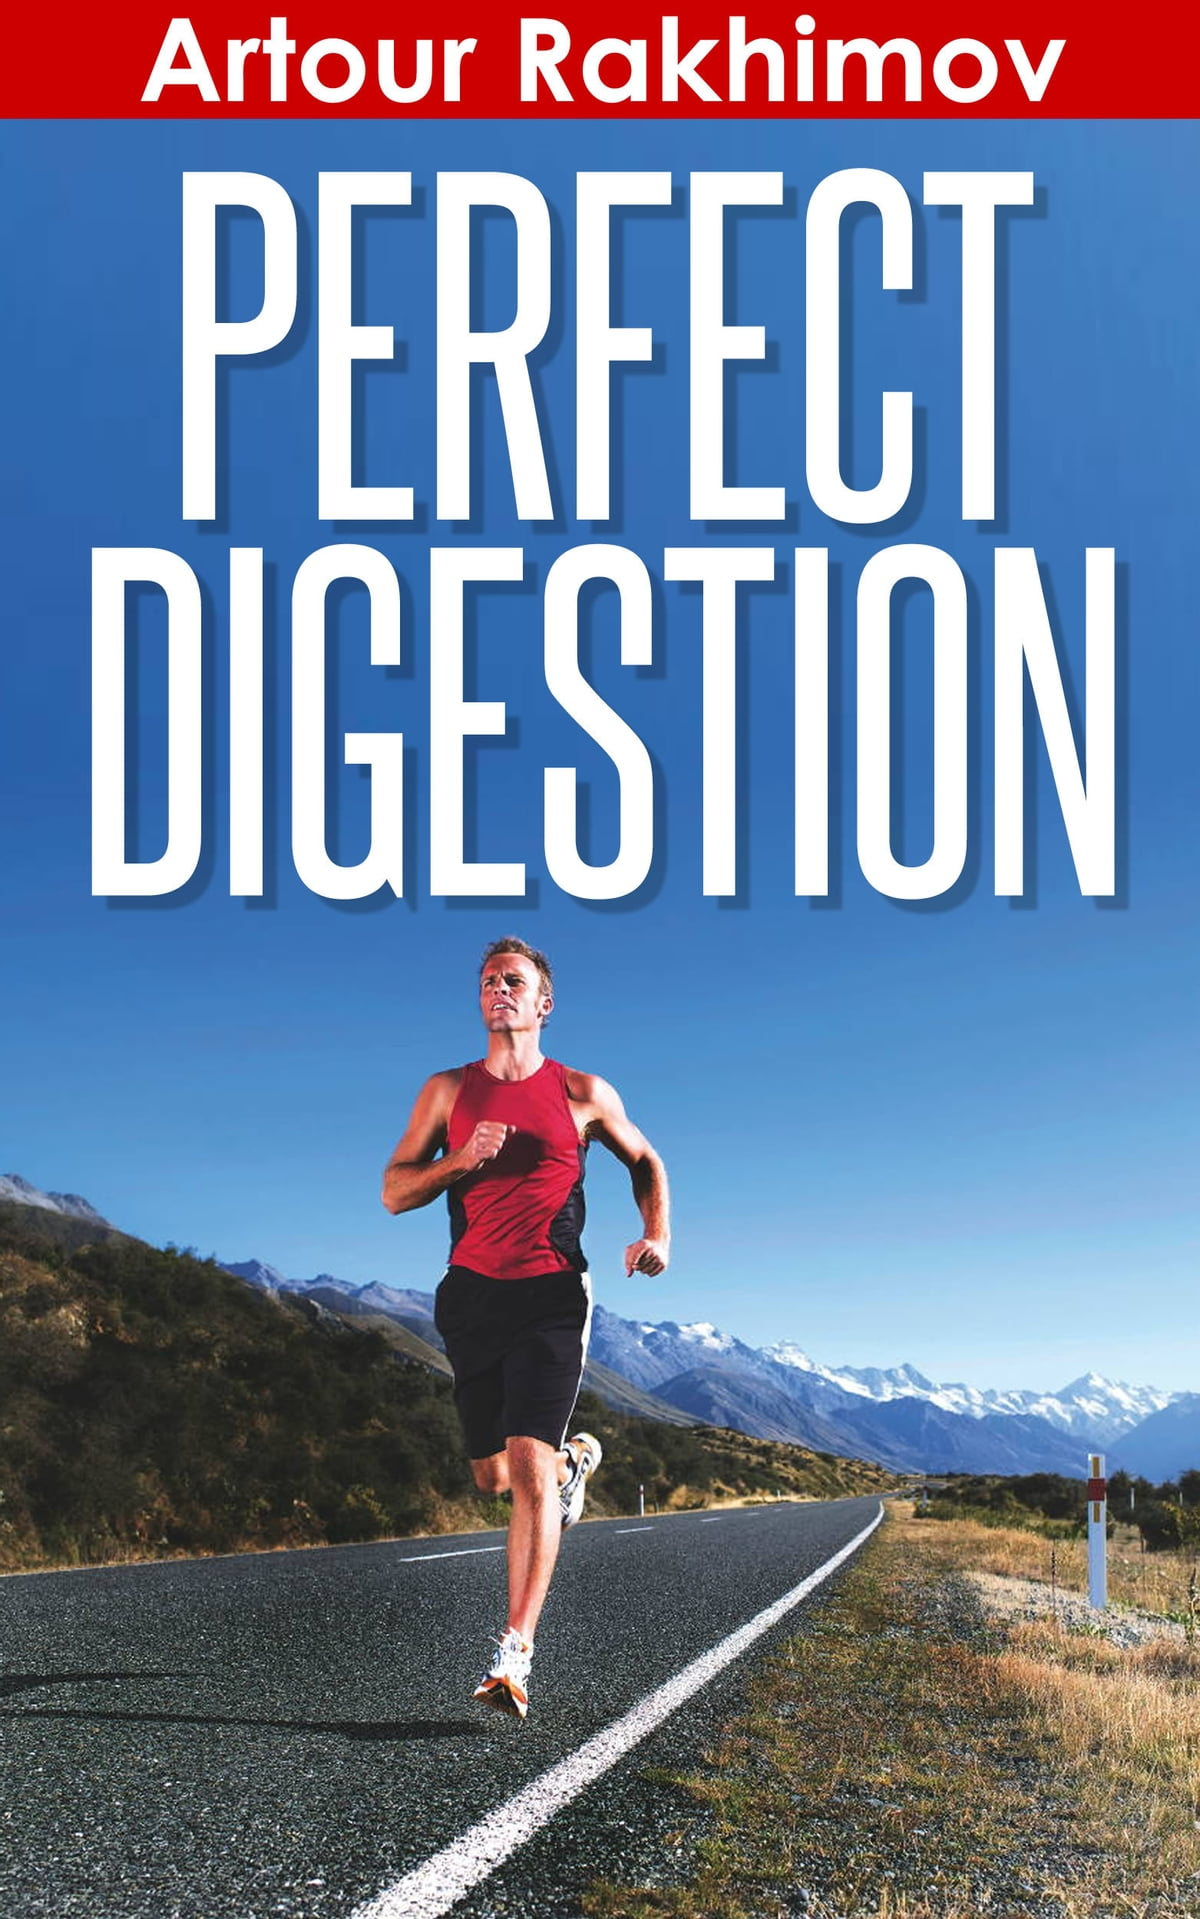 Fitness Lifestyle Wangen Perfect Digestion Ebook By Artour Rakhimov Rakuten Kobo